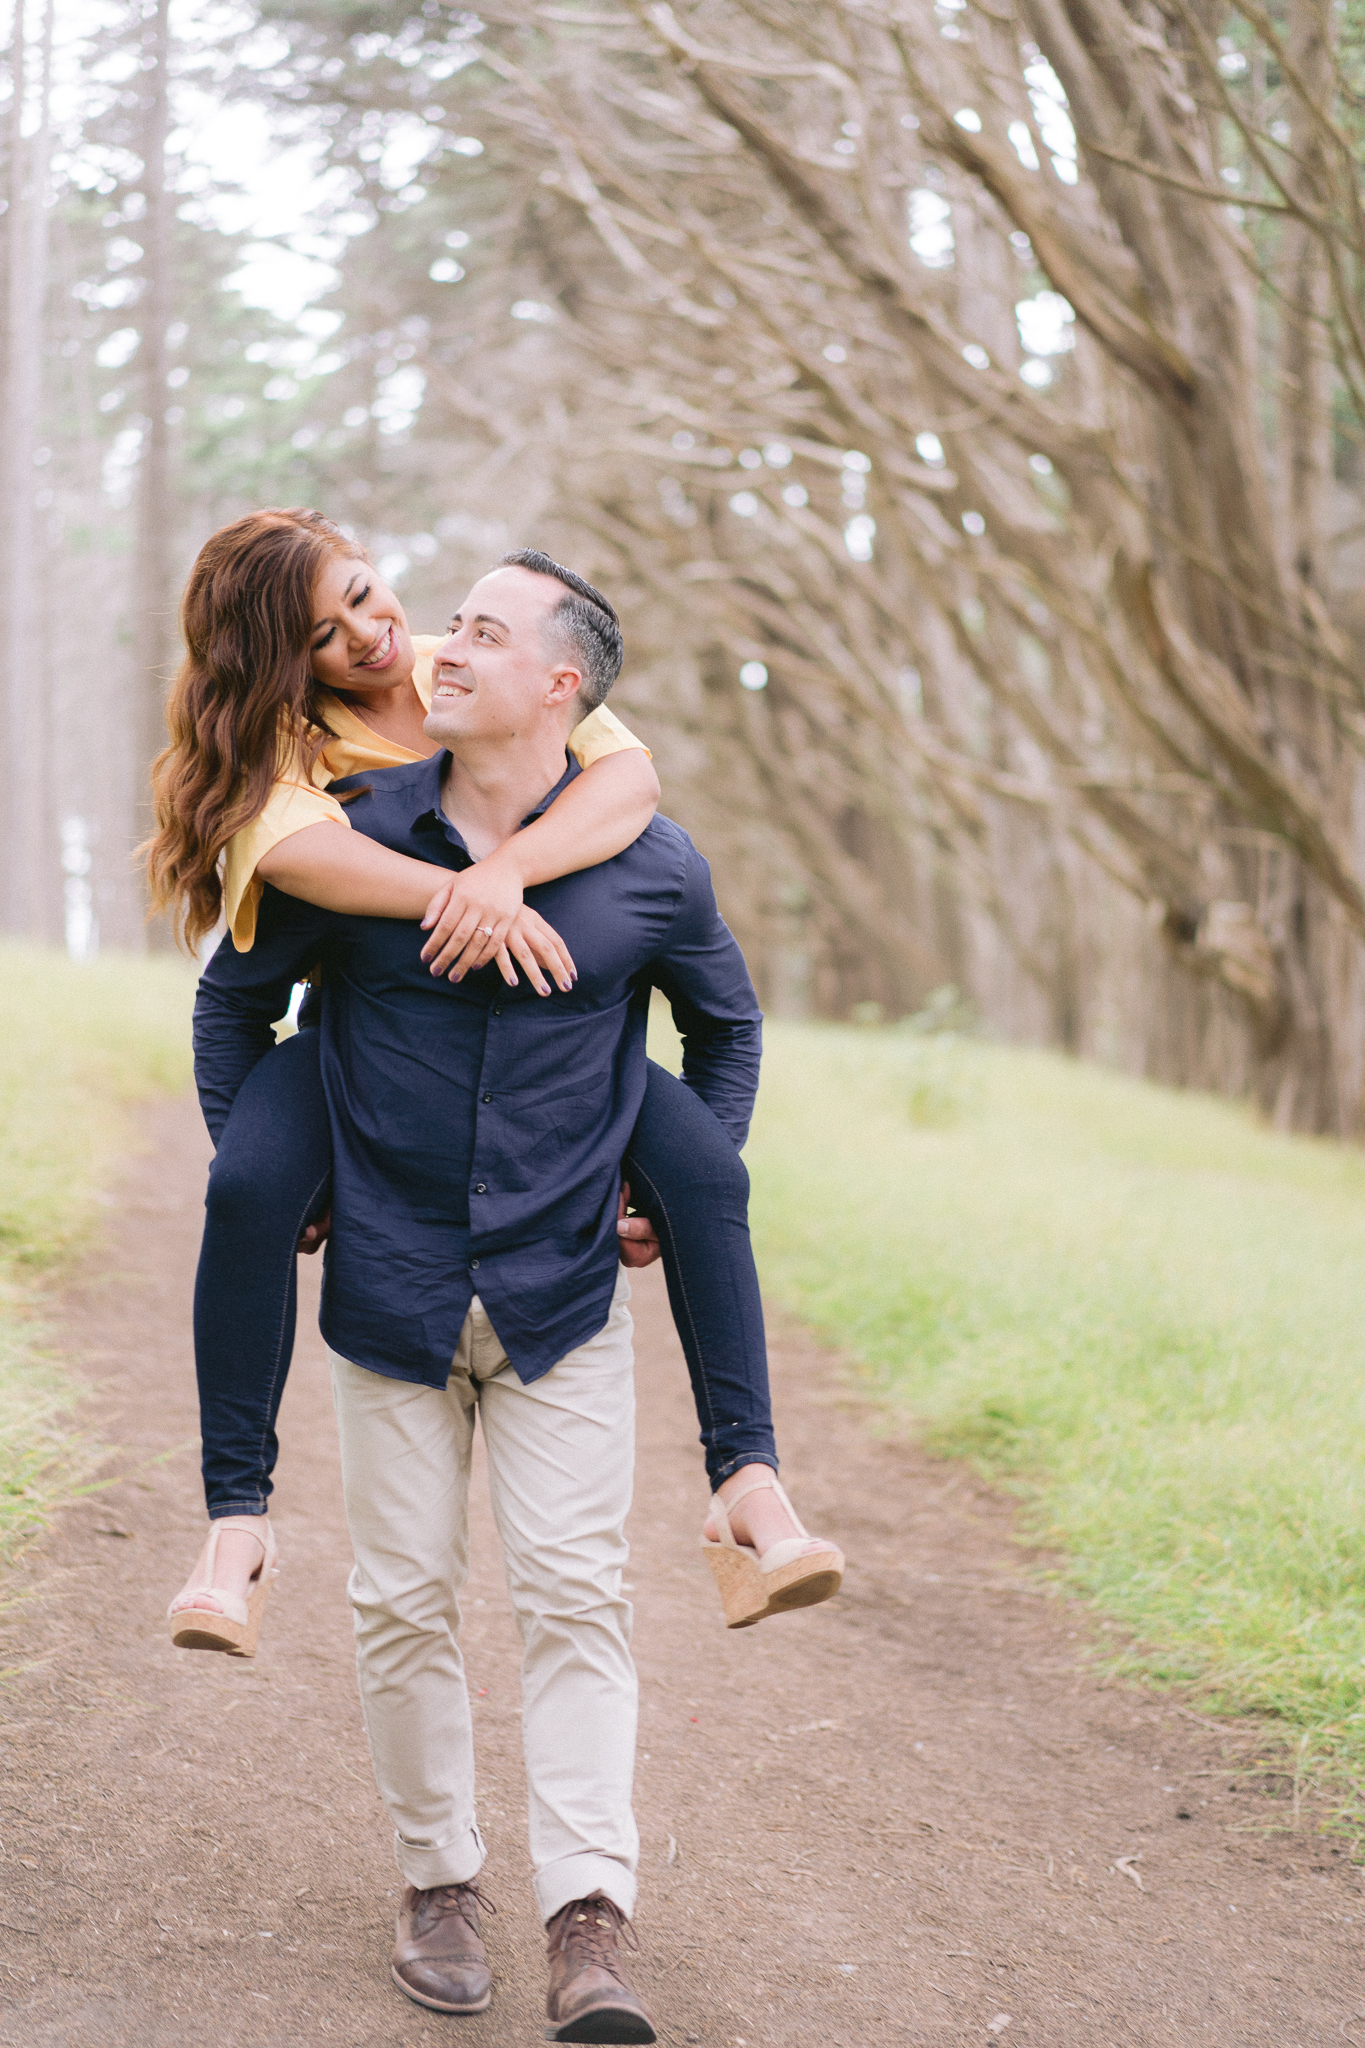 Fitzgerald Marine Reserve Engagement, Half Moon Bay Engagement, Beach Engagement, Monica and Lance July 2019-19.jpg